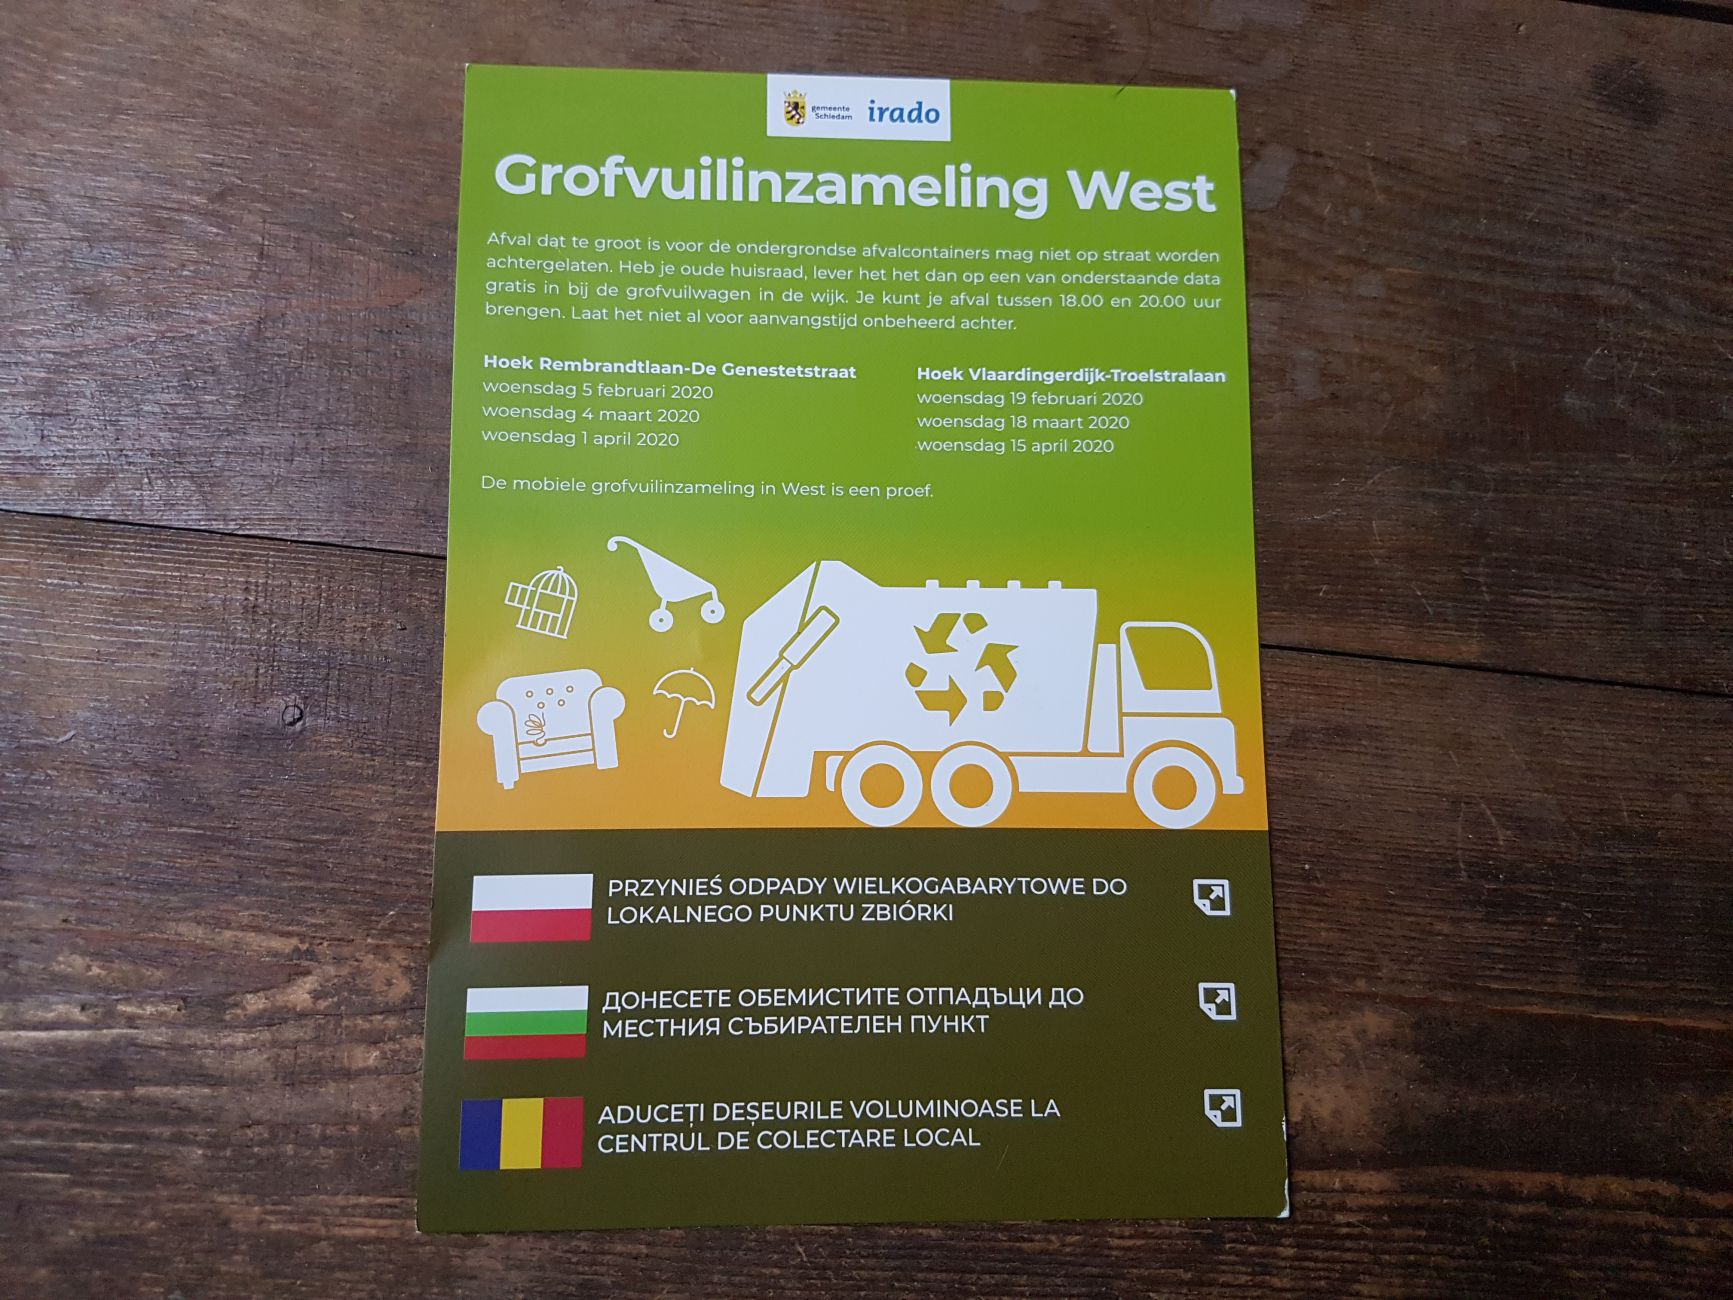 Grofvuilinzameling in west